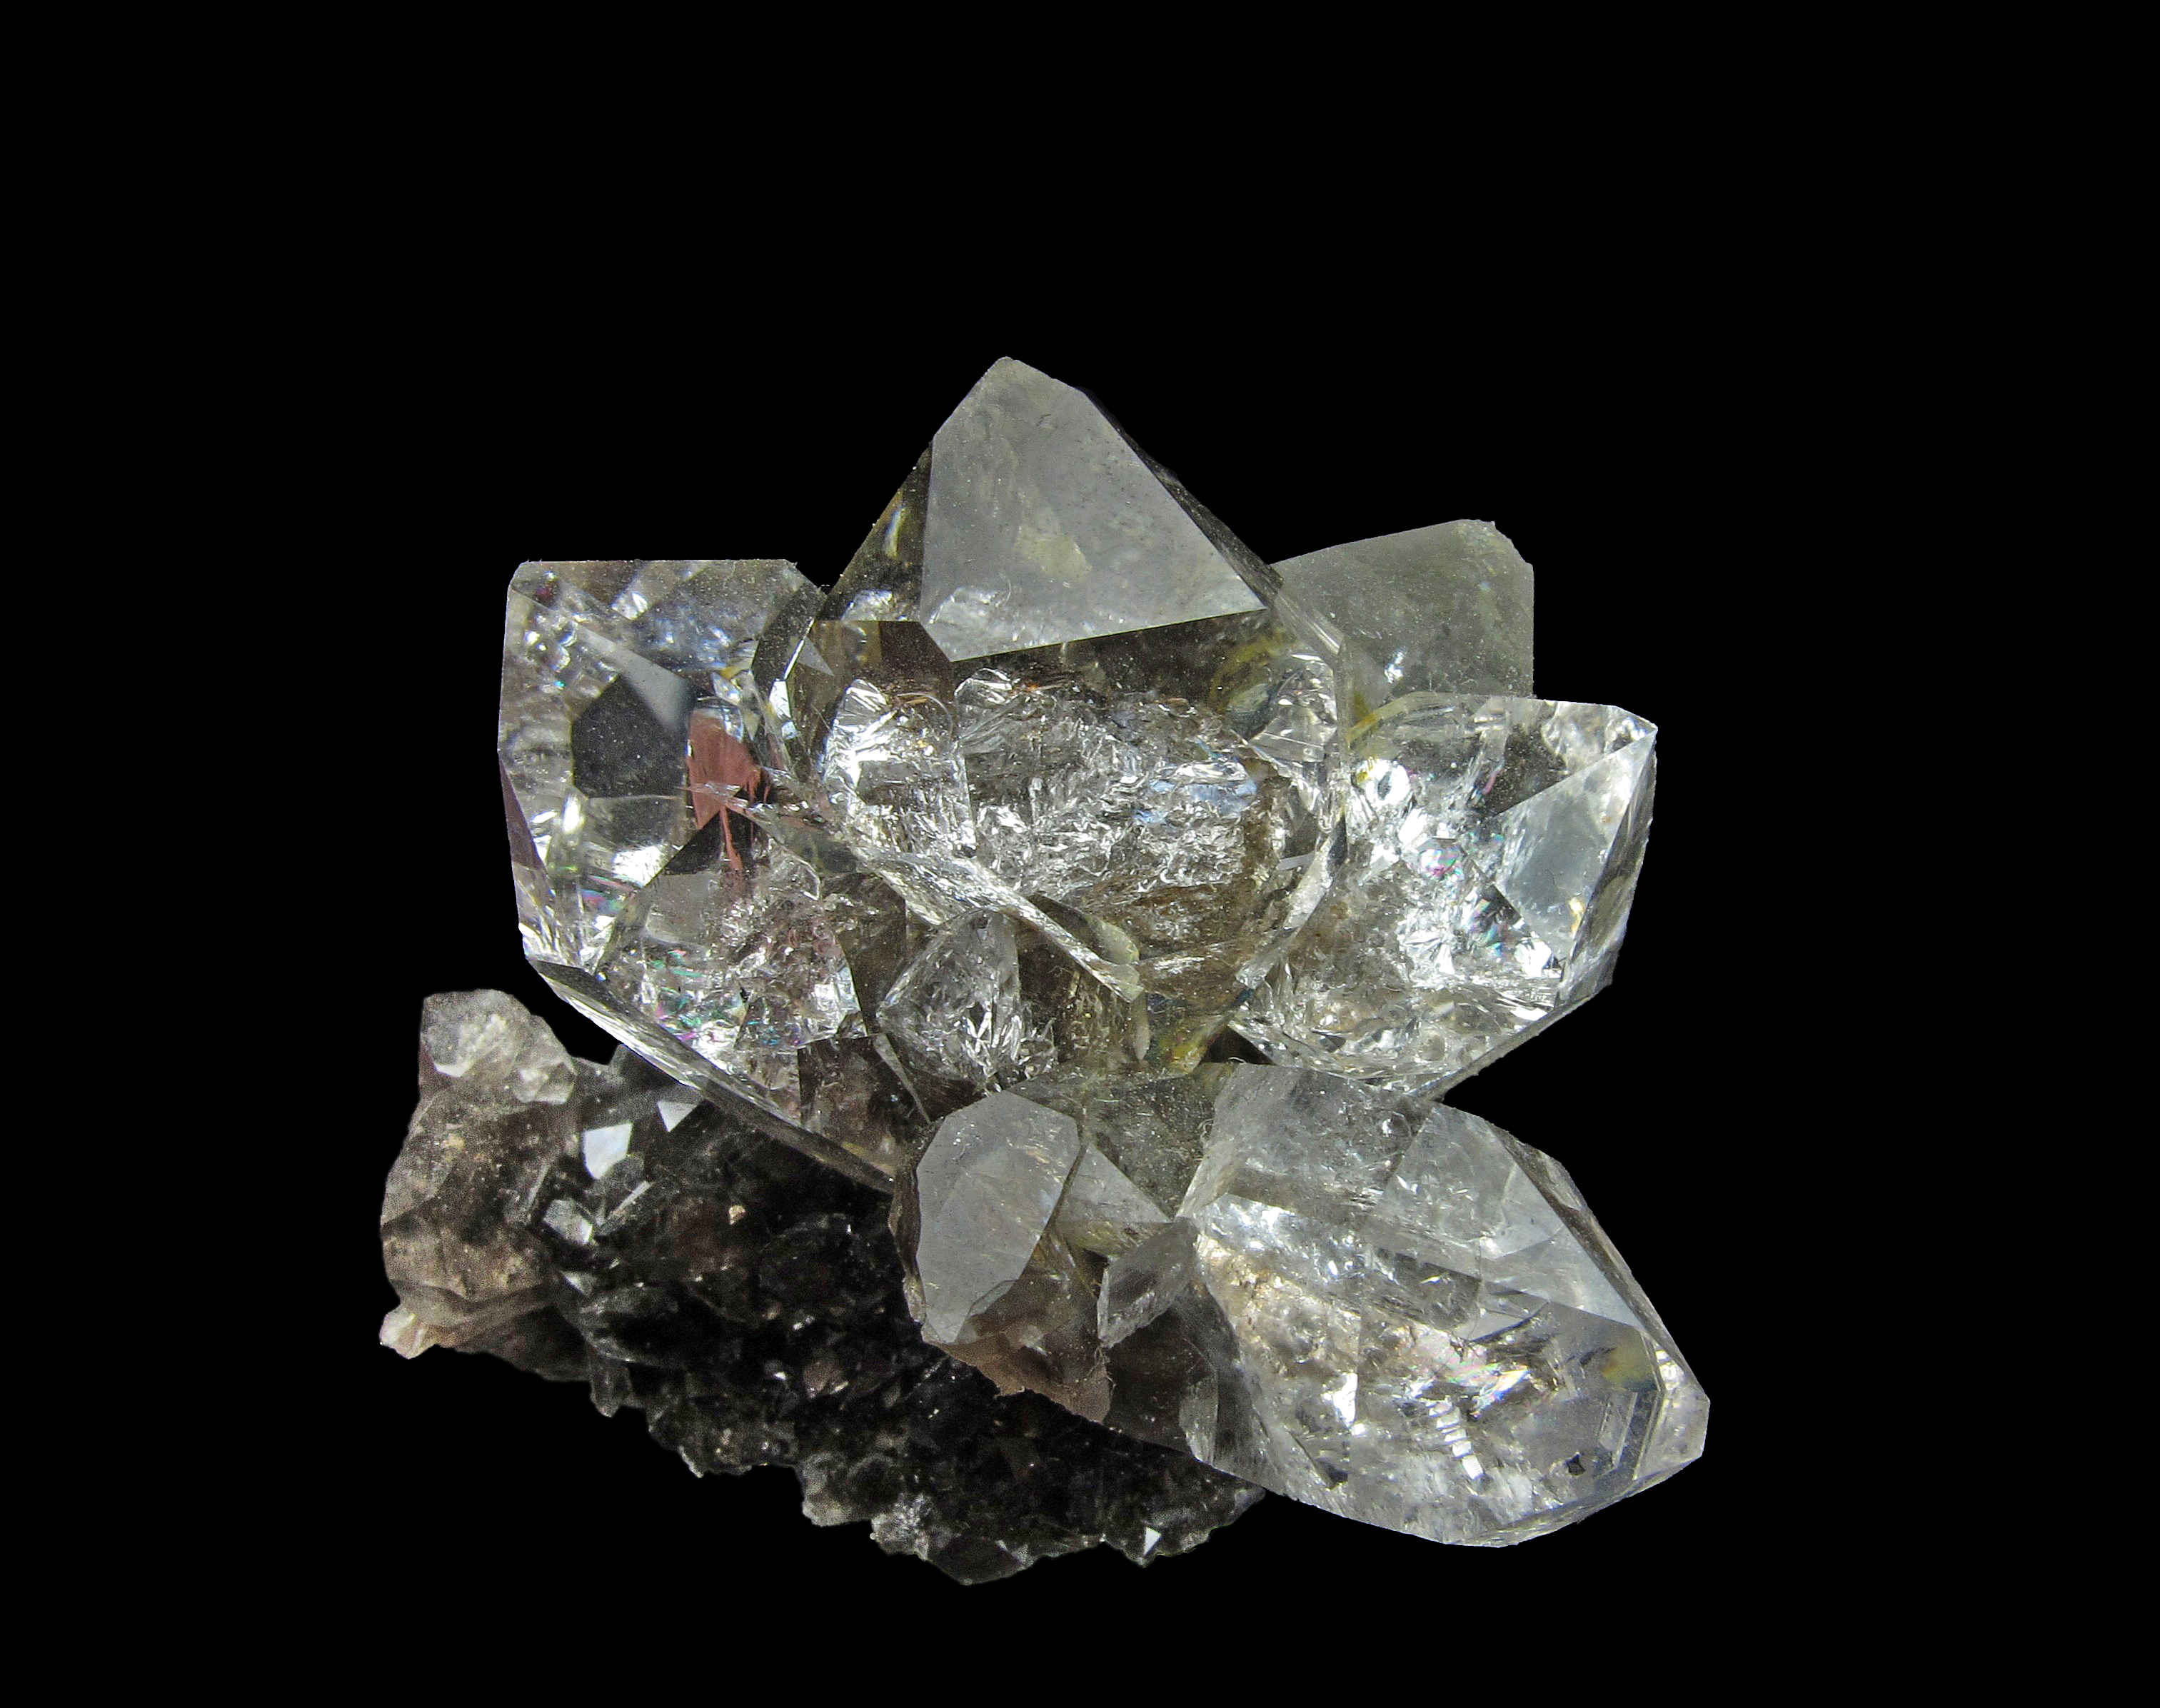 Herkimer Diamonds famous sharp doubly terminated form amazing